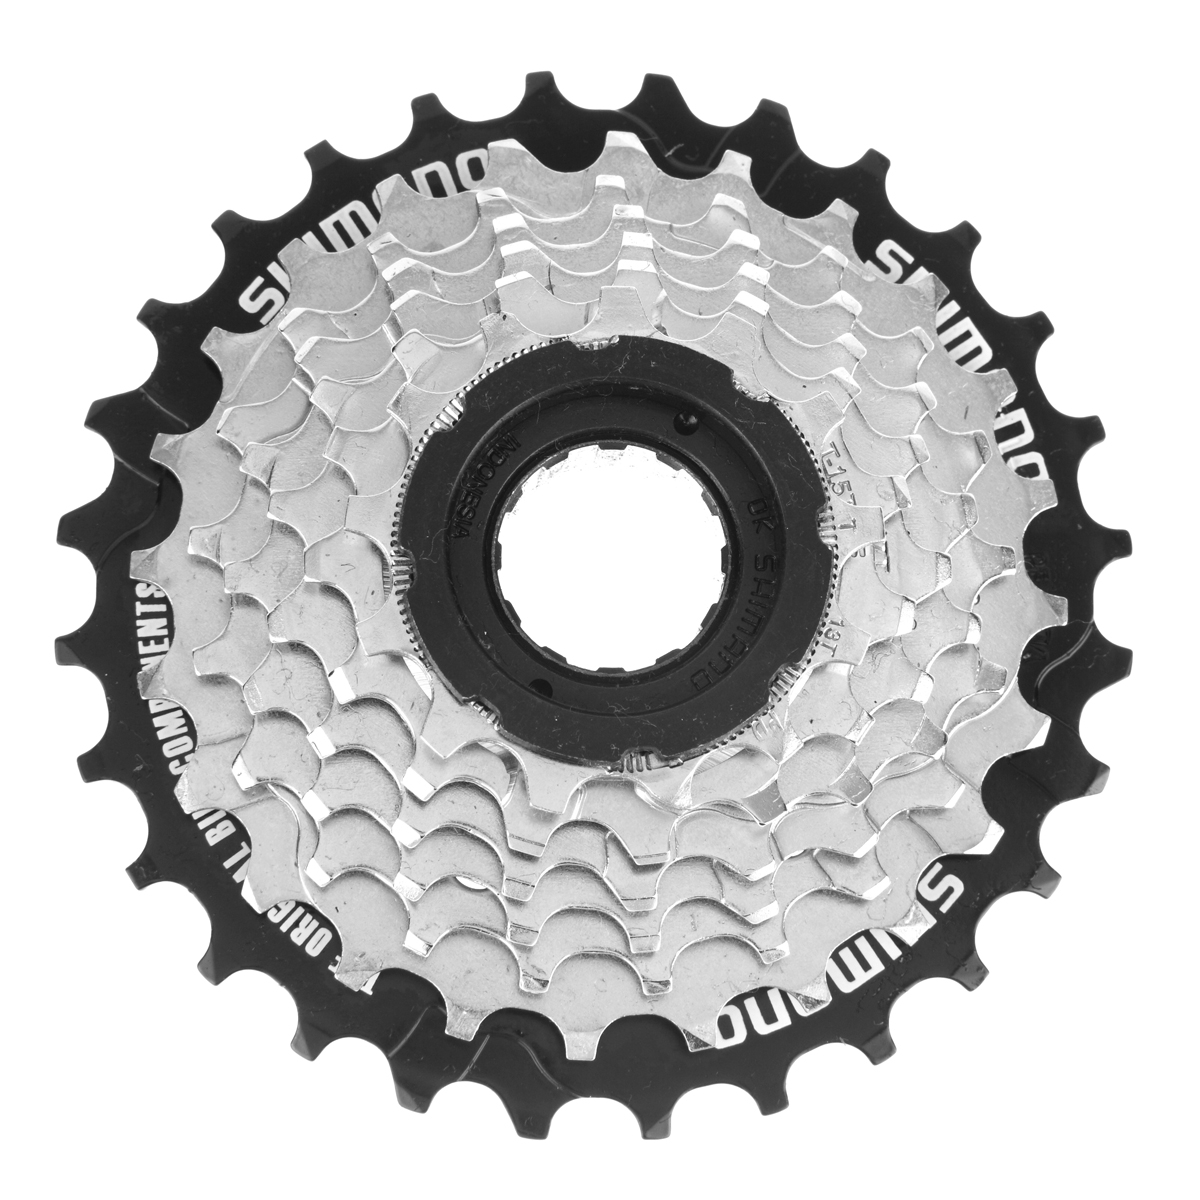 Roue-libre Shimano Mf-HG37 7V 13-28 dents